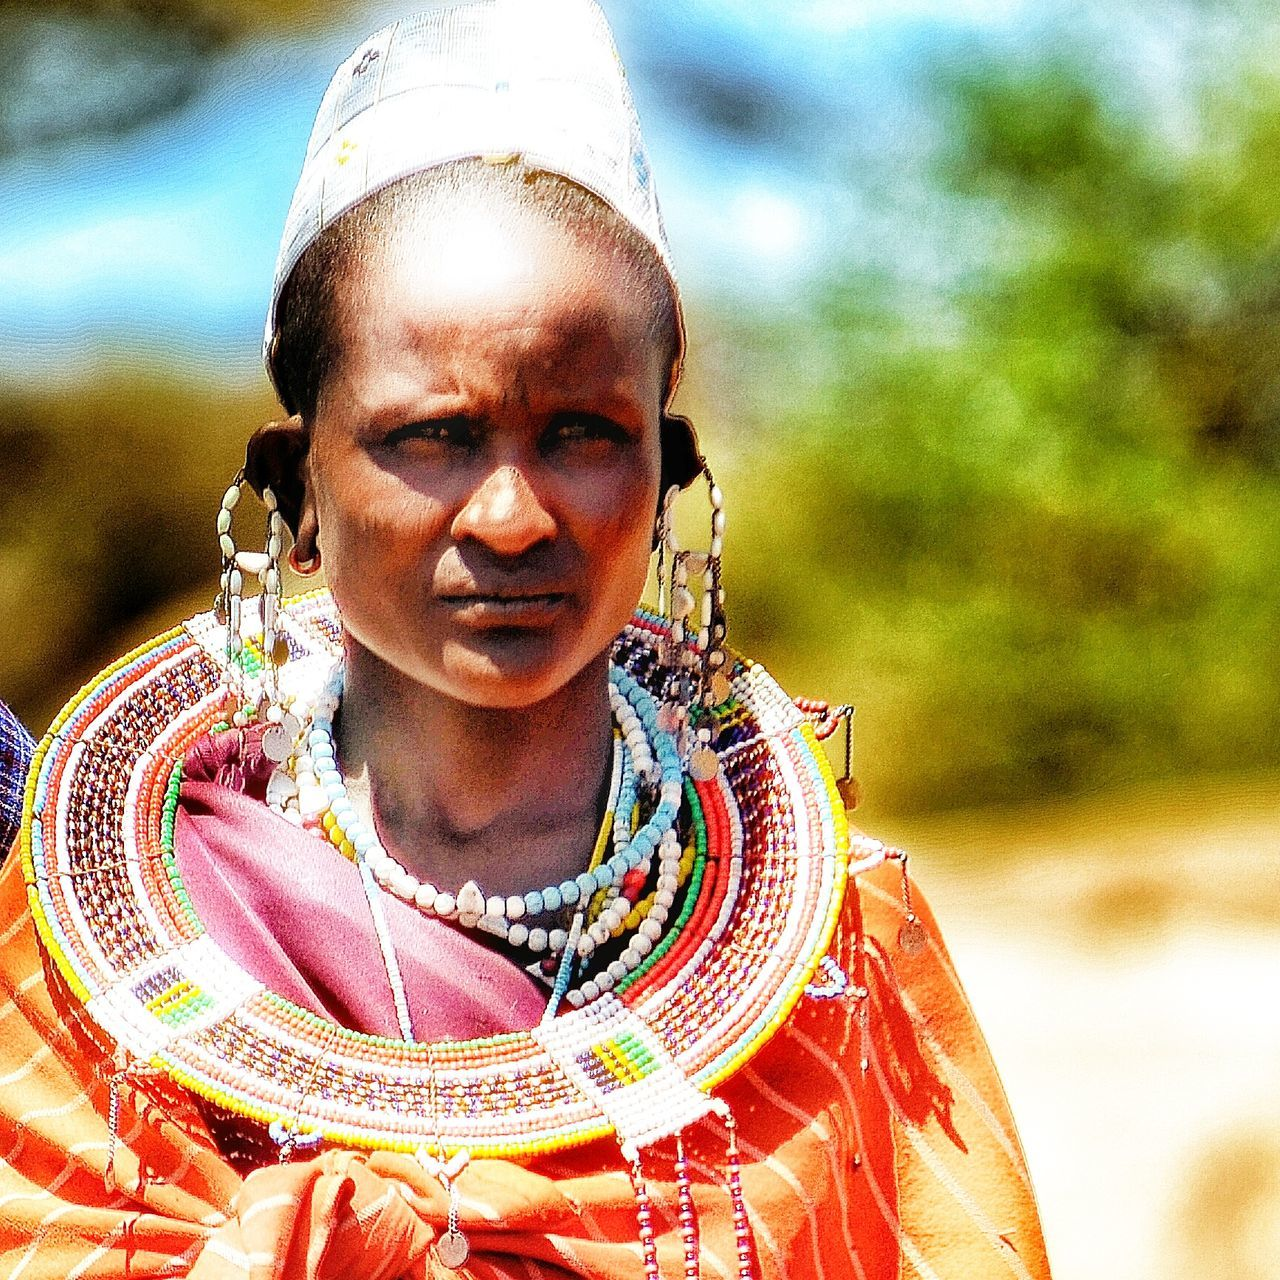 A Masai woman I was lucky enough to meet in the Serengeti, Tanzania. Real People Cultures Close-up One Person Africa Serengeti National Park African Masai Tanzania Faces Of The World Portrait EyeEmNewHere Travel Photography Travellife NOMAD Outdoors People Women Beautiful Woman Beautiful People Different Cultures Nikonphotography Travelgram Looking At Camera EyeEmNewHere Women Around The World